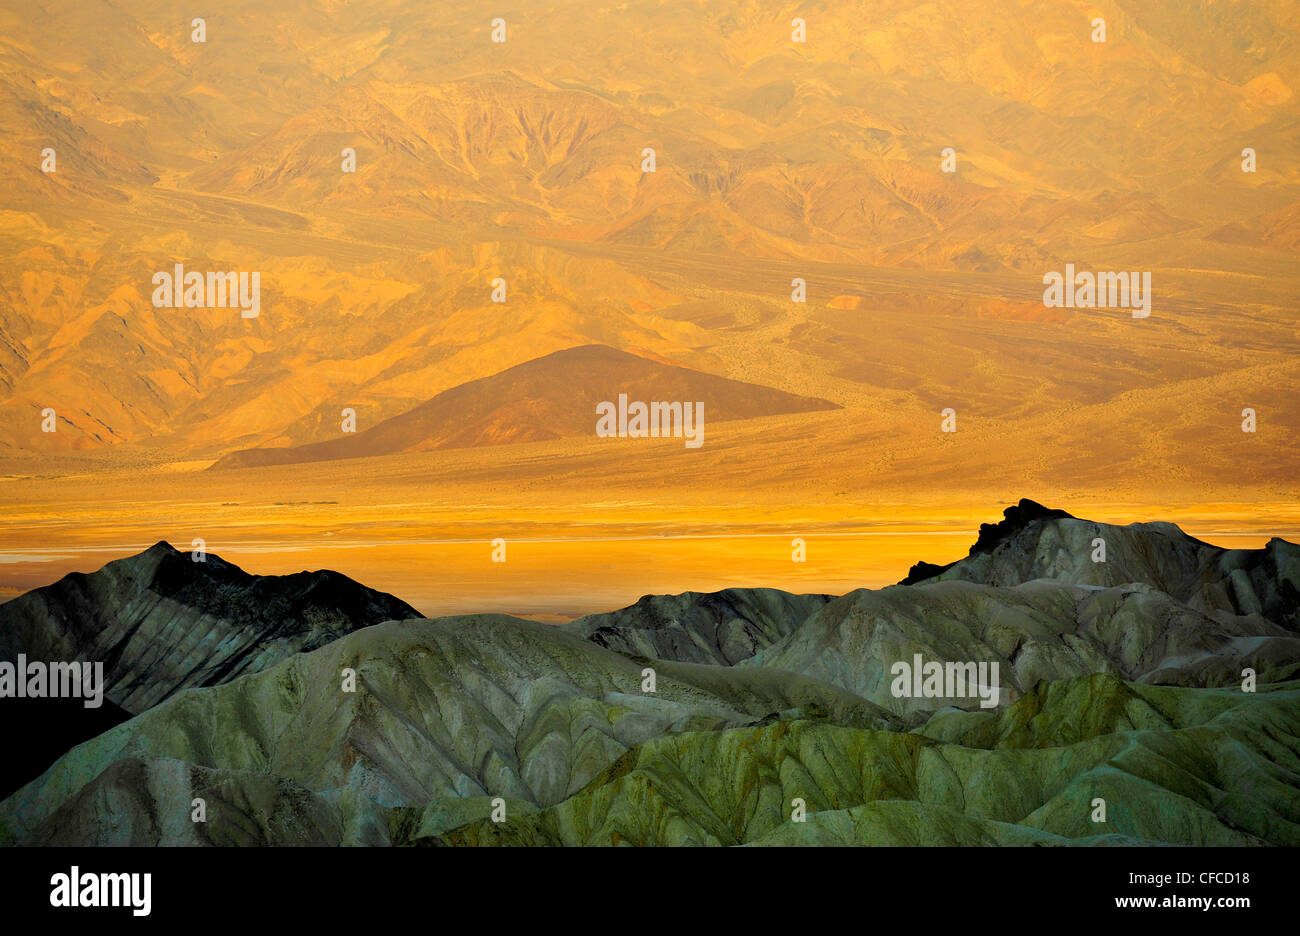 Zabriskie Point, Death Valley National Park, the hottest and driest of the national parks in the USA, California, - Stock Image